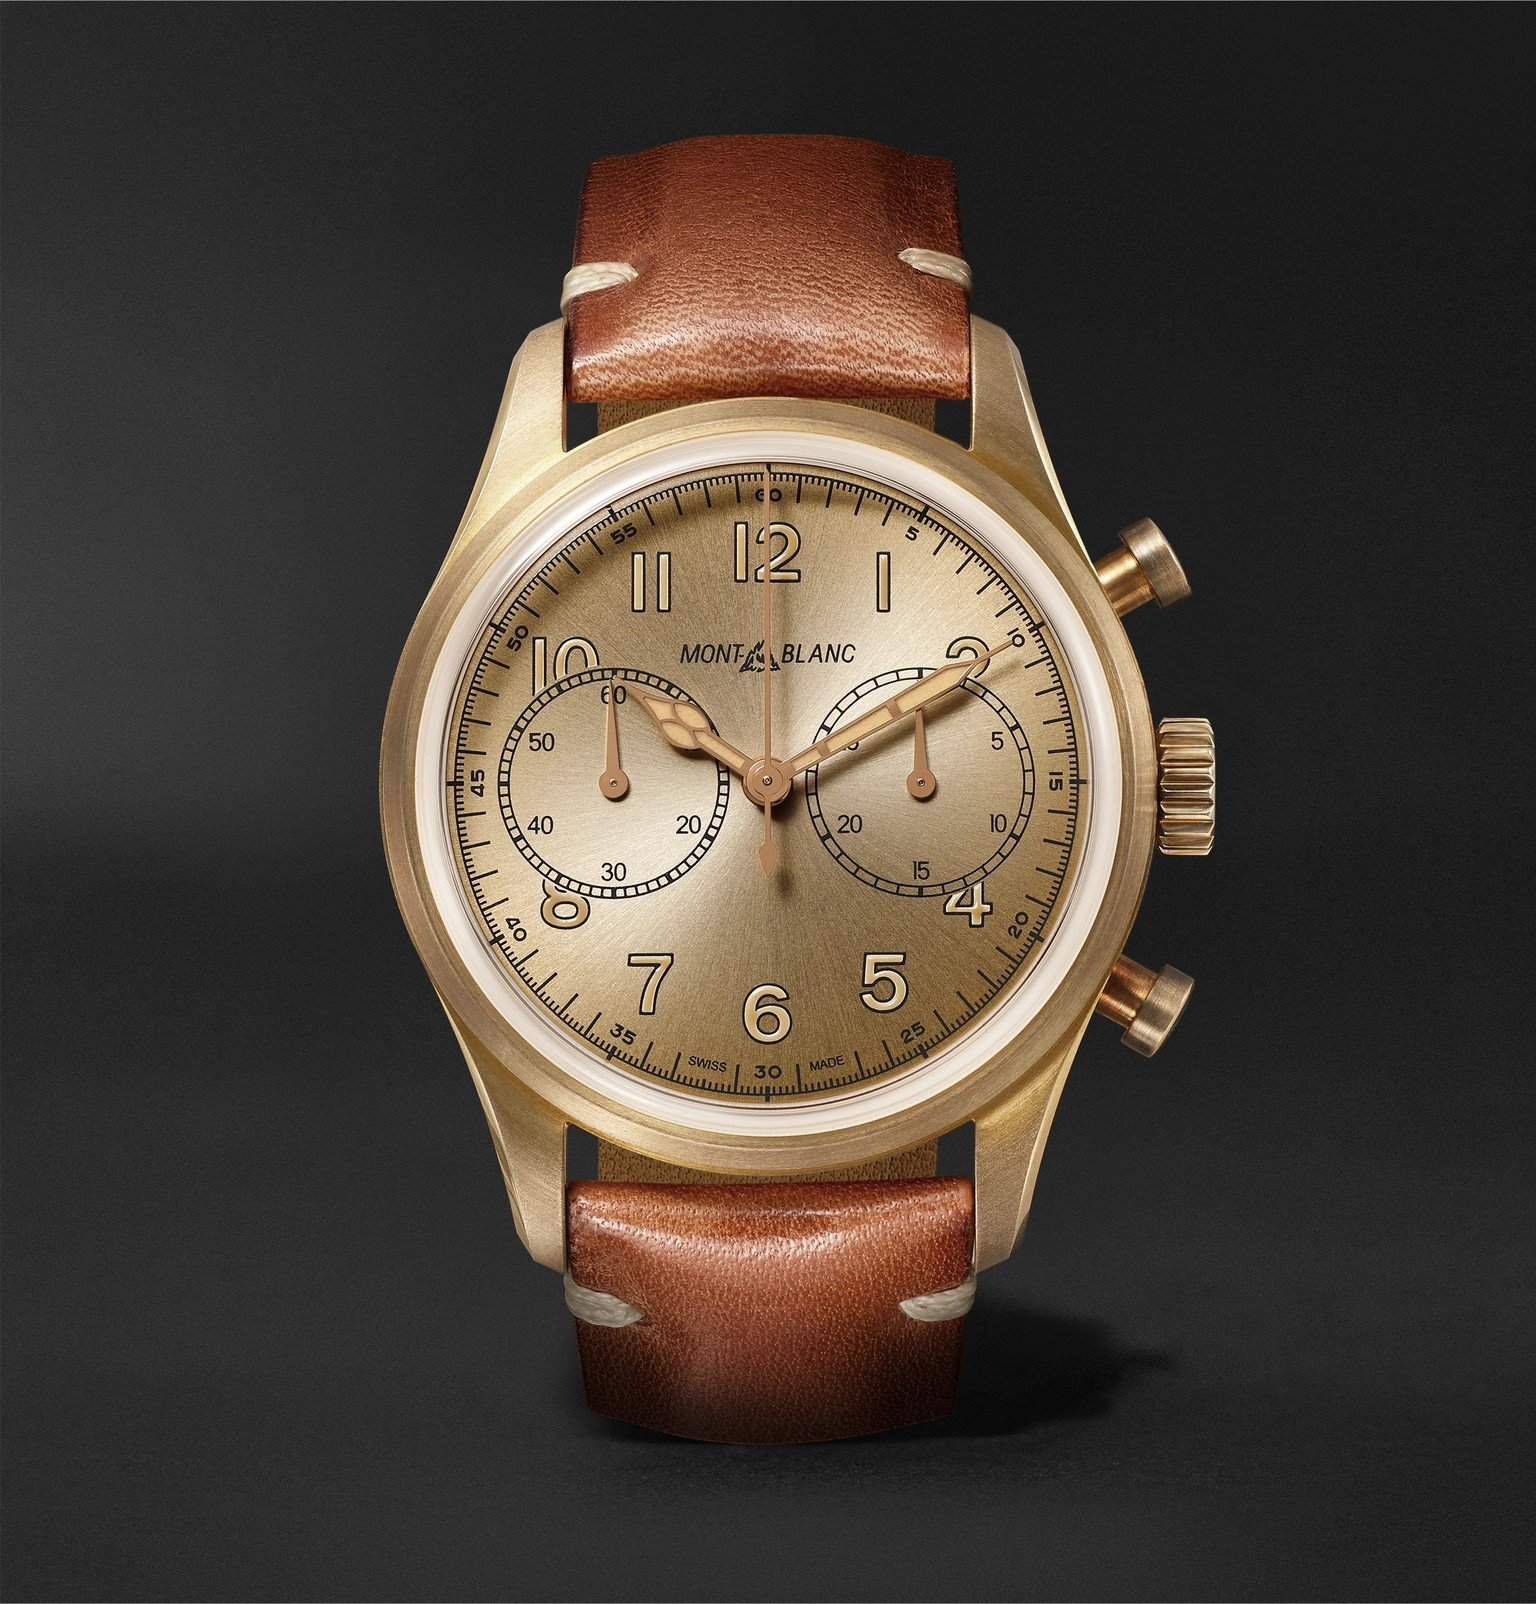 Photo: Montblanc - 1858 Automatic Chronograph 42mm Bronze and Leather Watch, Ref. No. 118223 - Gold